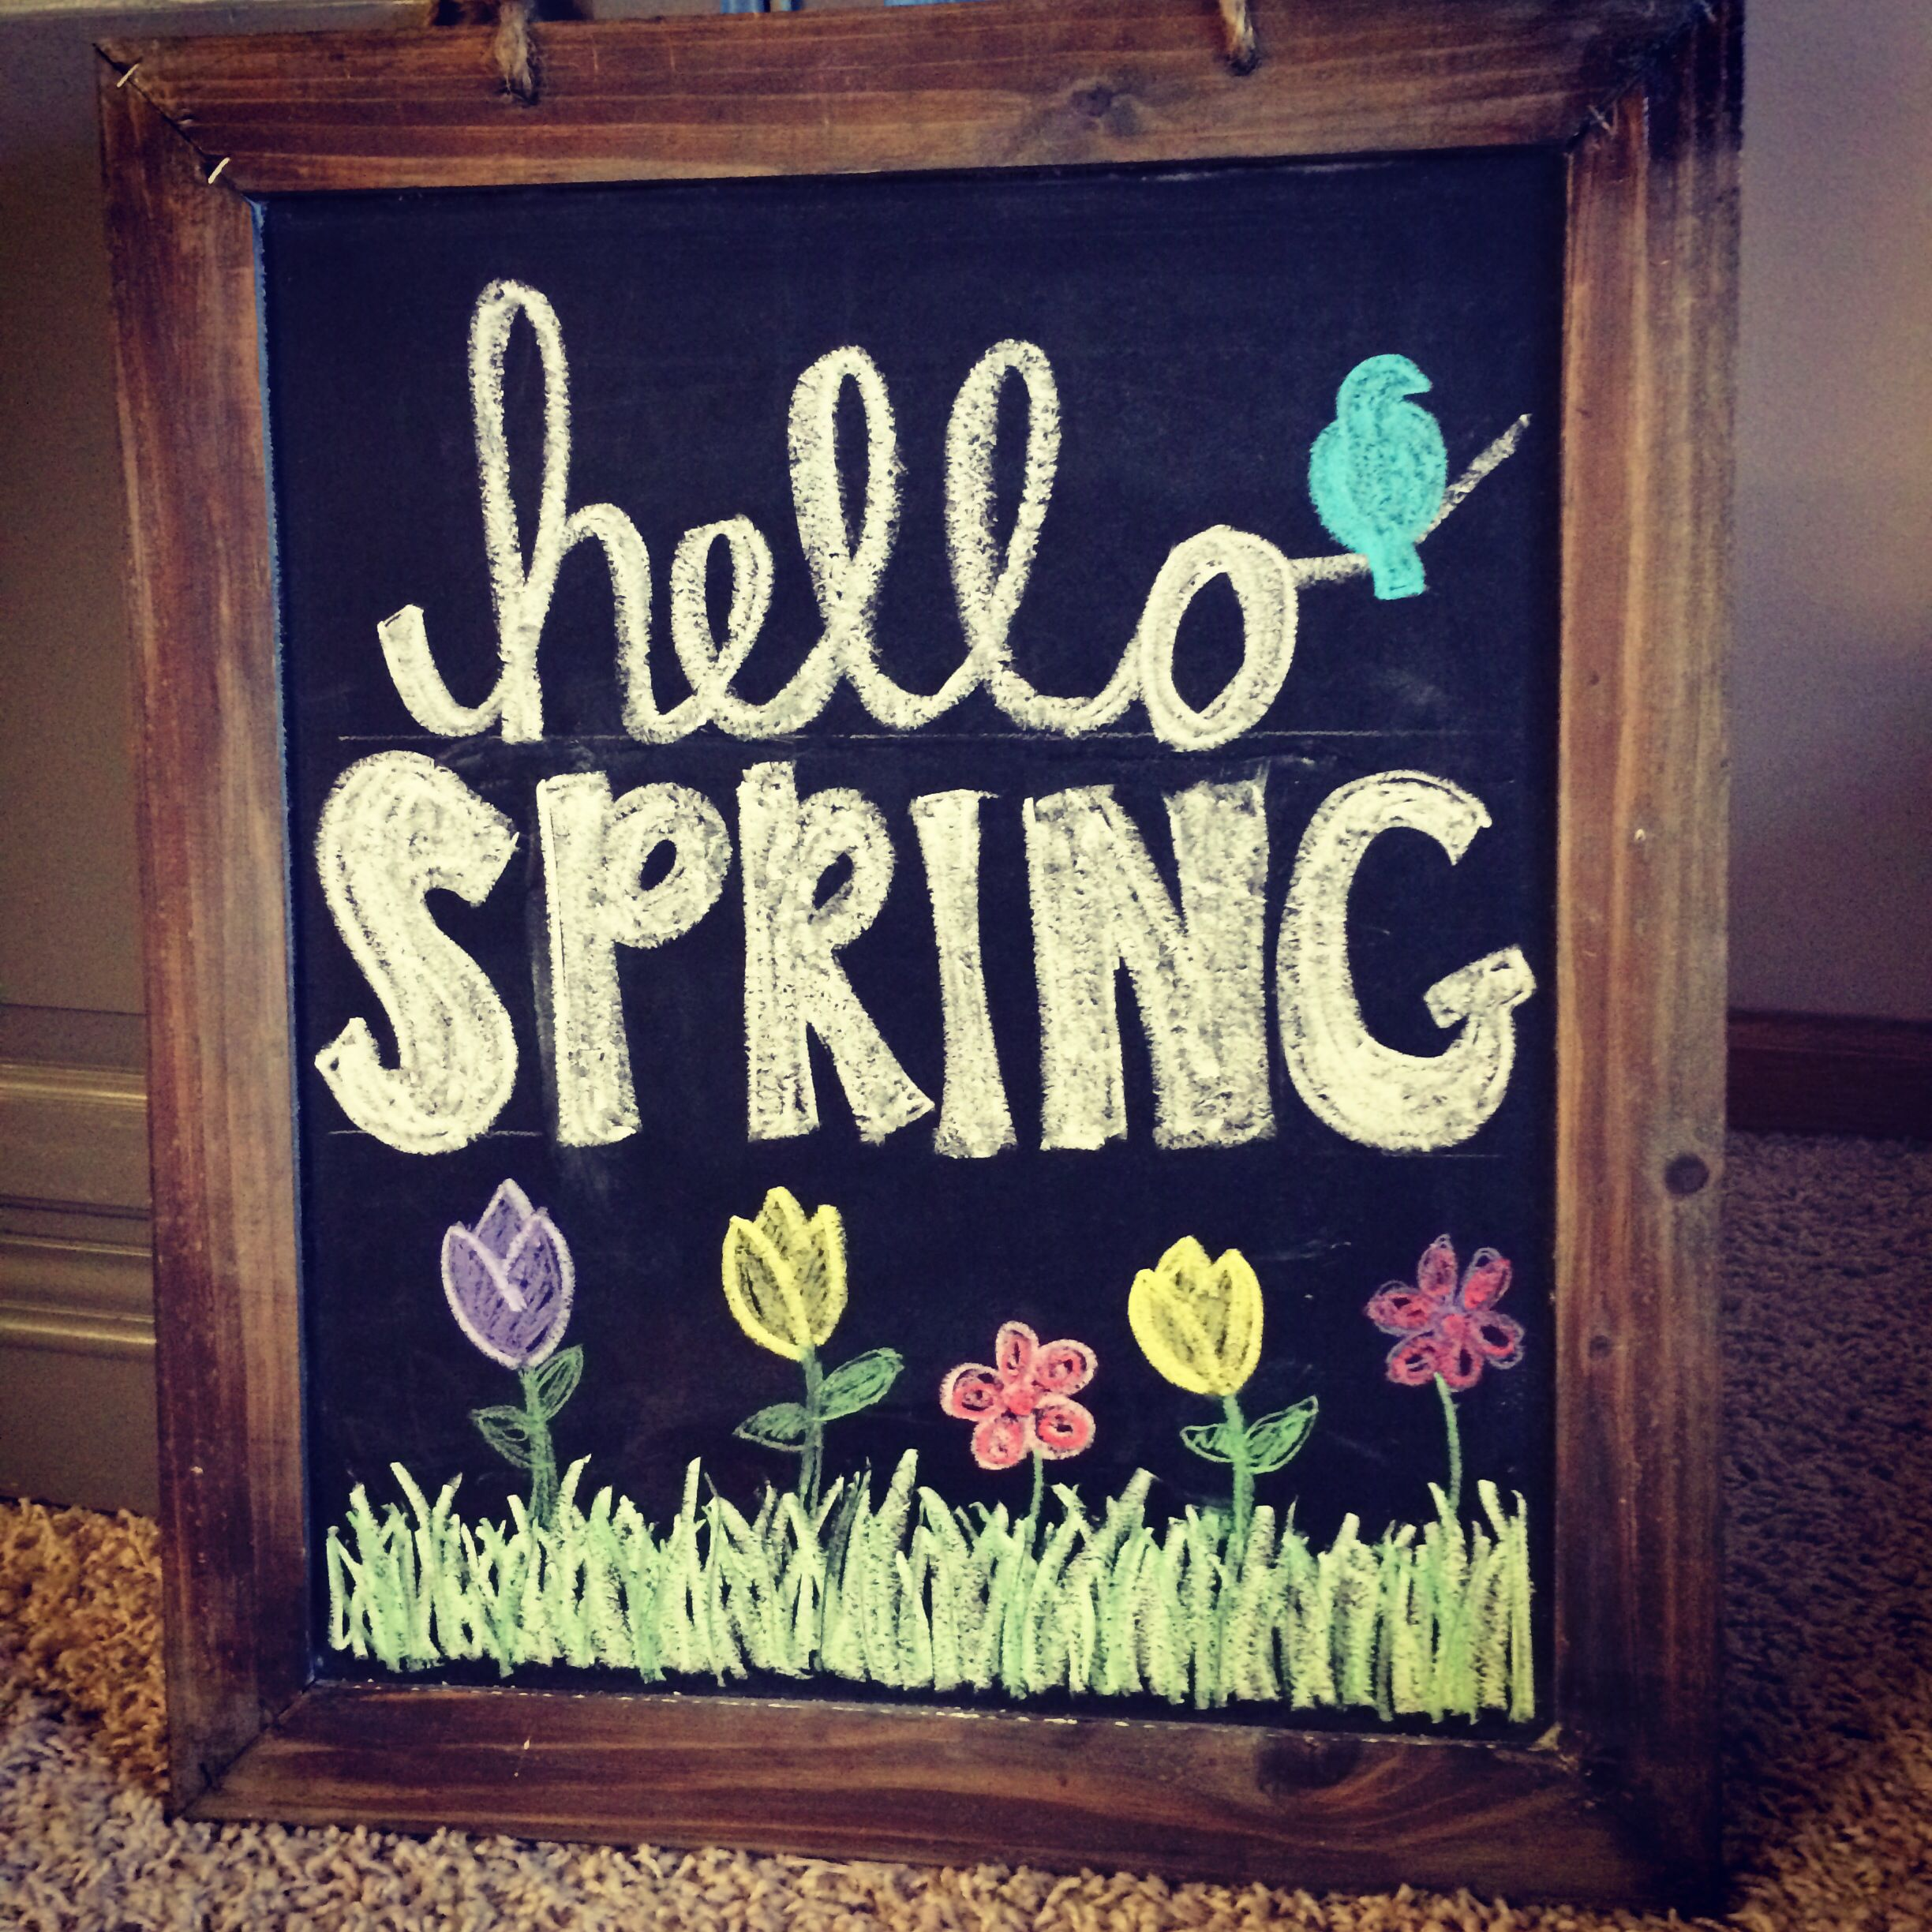 Another neat chalkboard design by Amanda M Photography ...